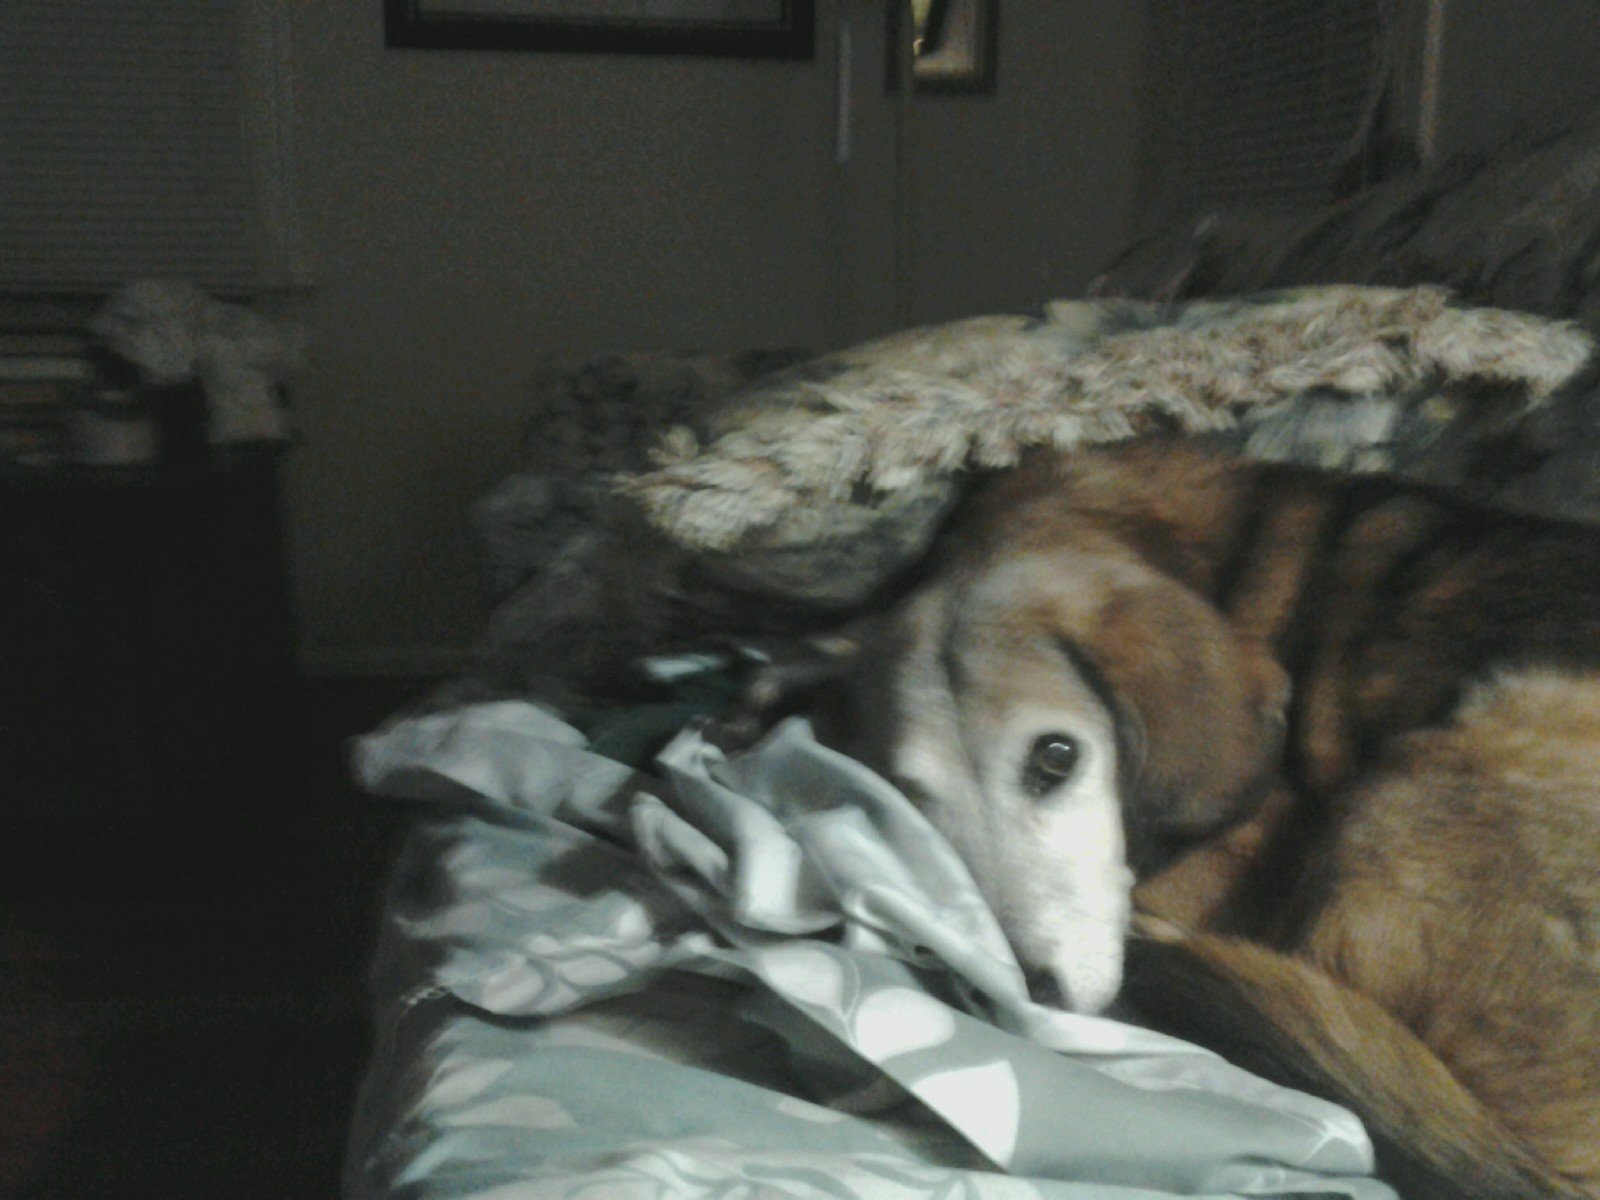 Coco thinks she is hiding under a pillow  Dec 2014.jpg